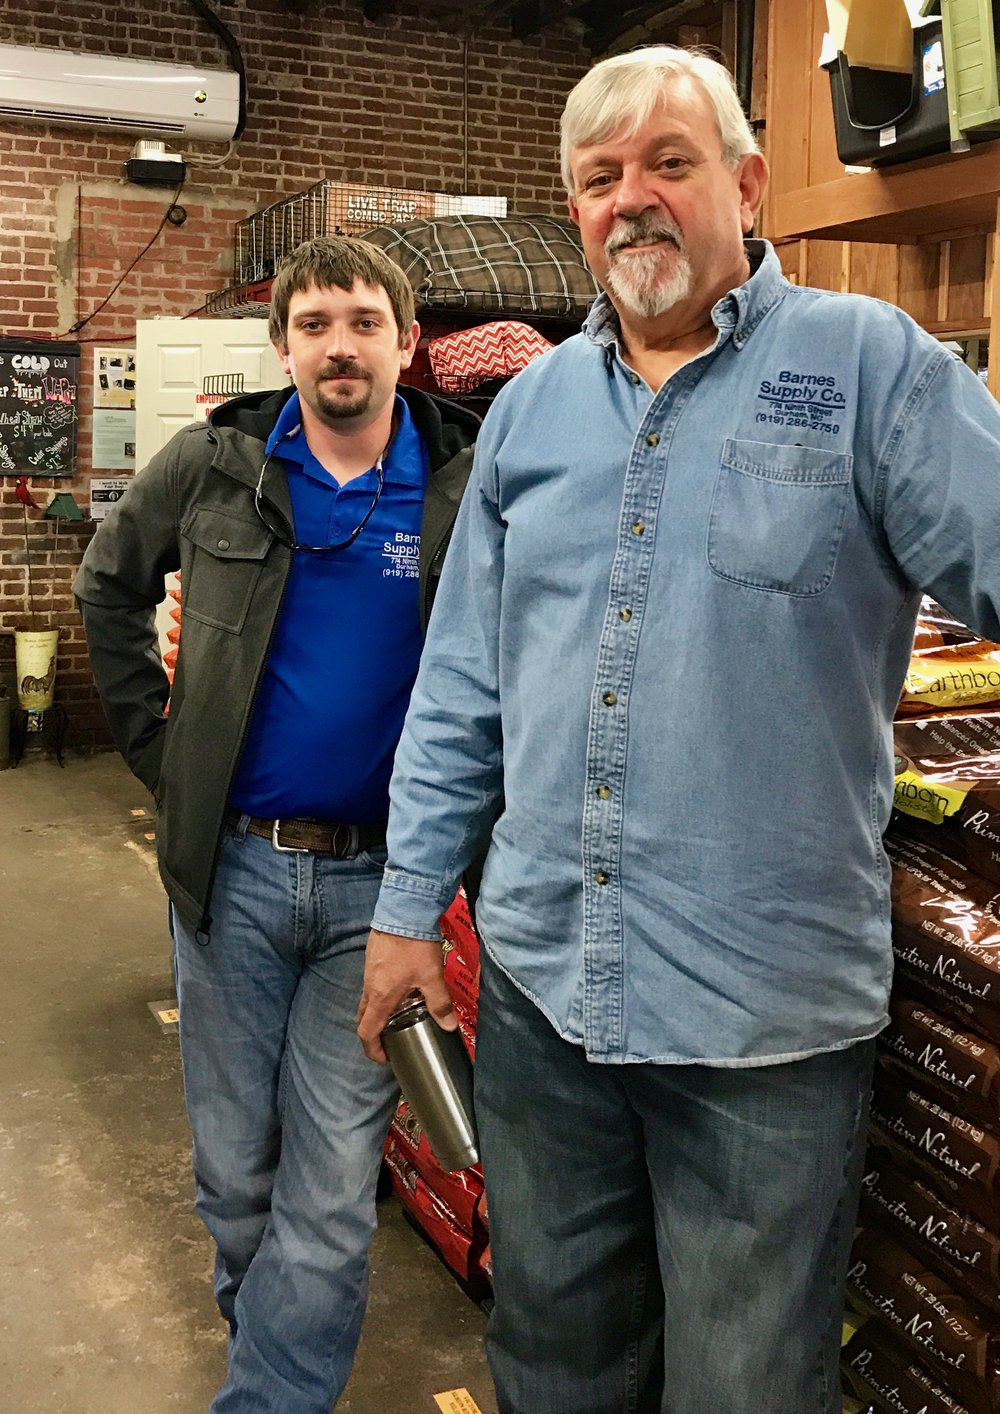 Gary George and his son, Jonathan, at Barnes Supply Co.